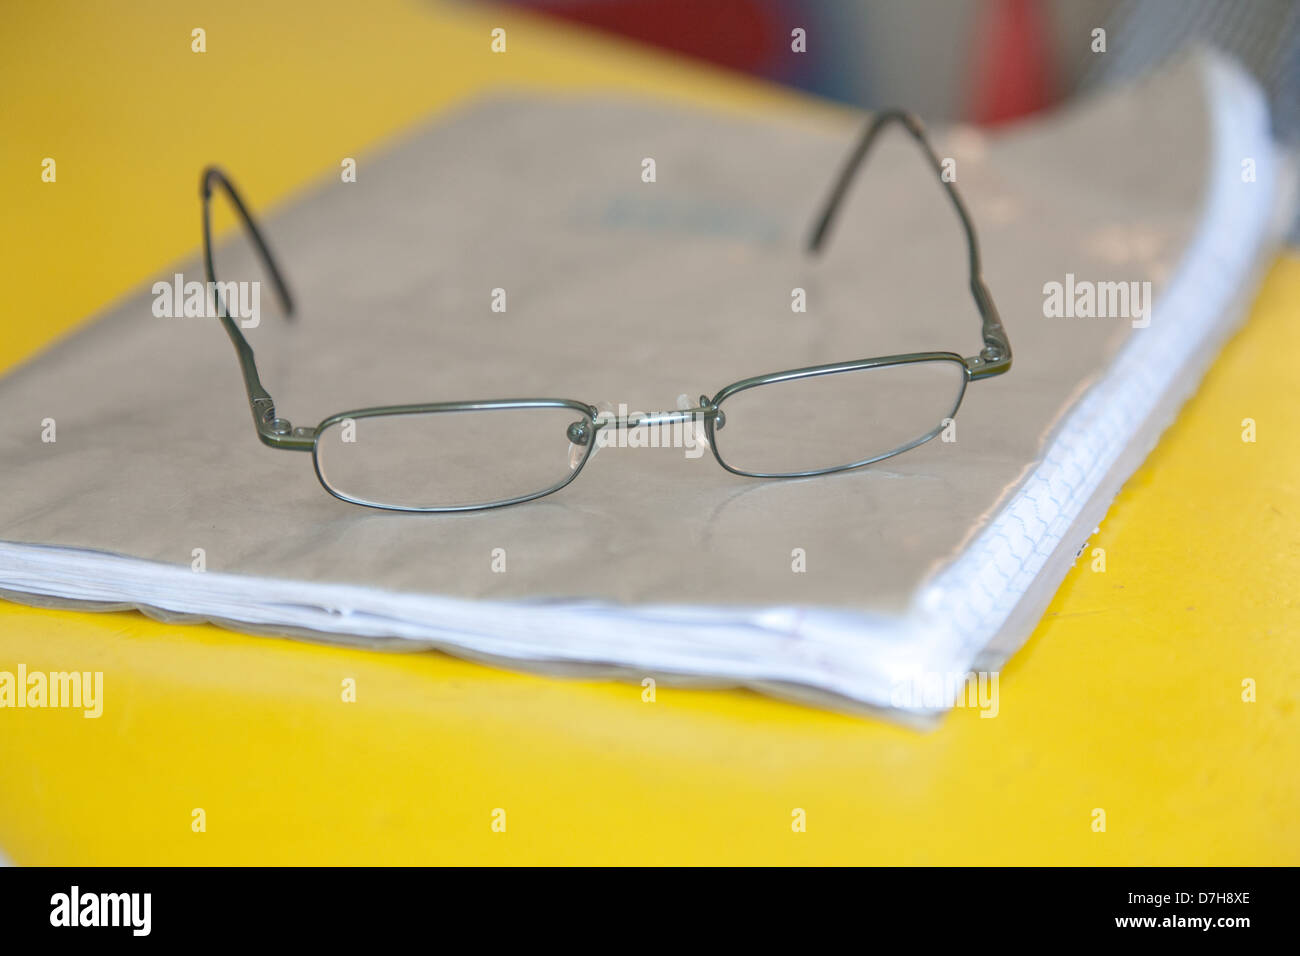 close up on a pair of glasses on top of a school book Stock Photo